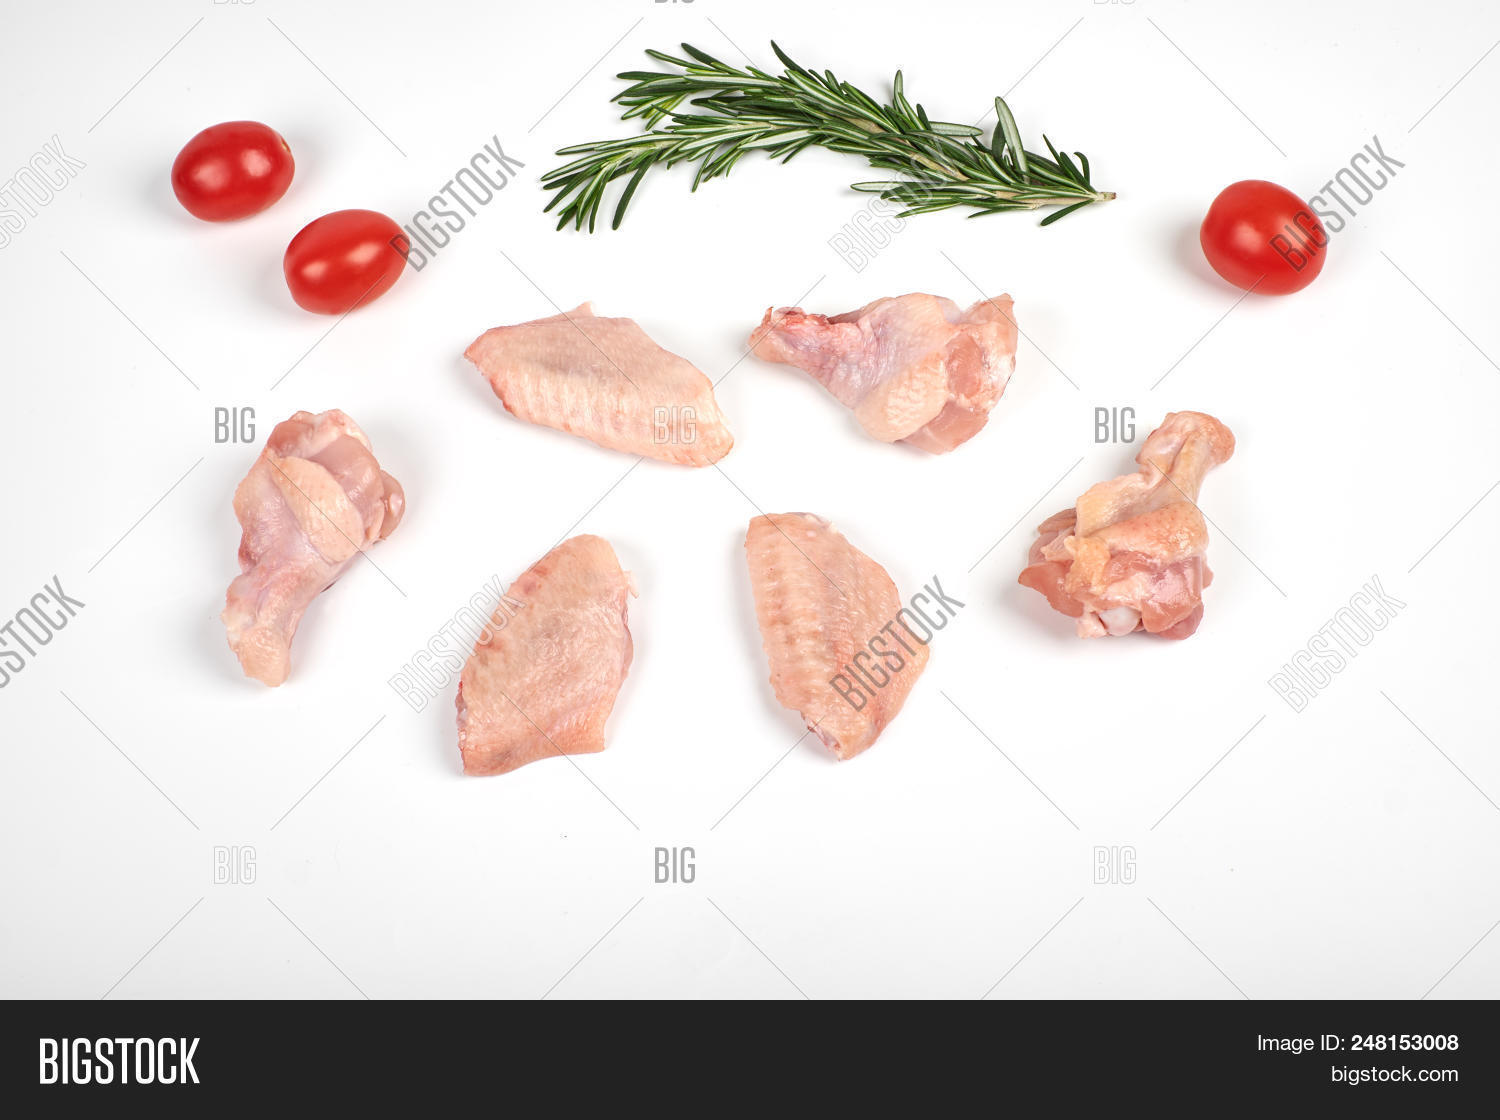 Raw Chicken Wings Image Photo Free Trial Bigstock Diagram Of The Wing A Top View Tomatoes And Rosemary Isolated On White Background